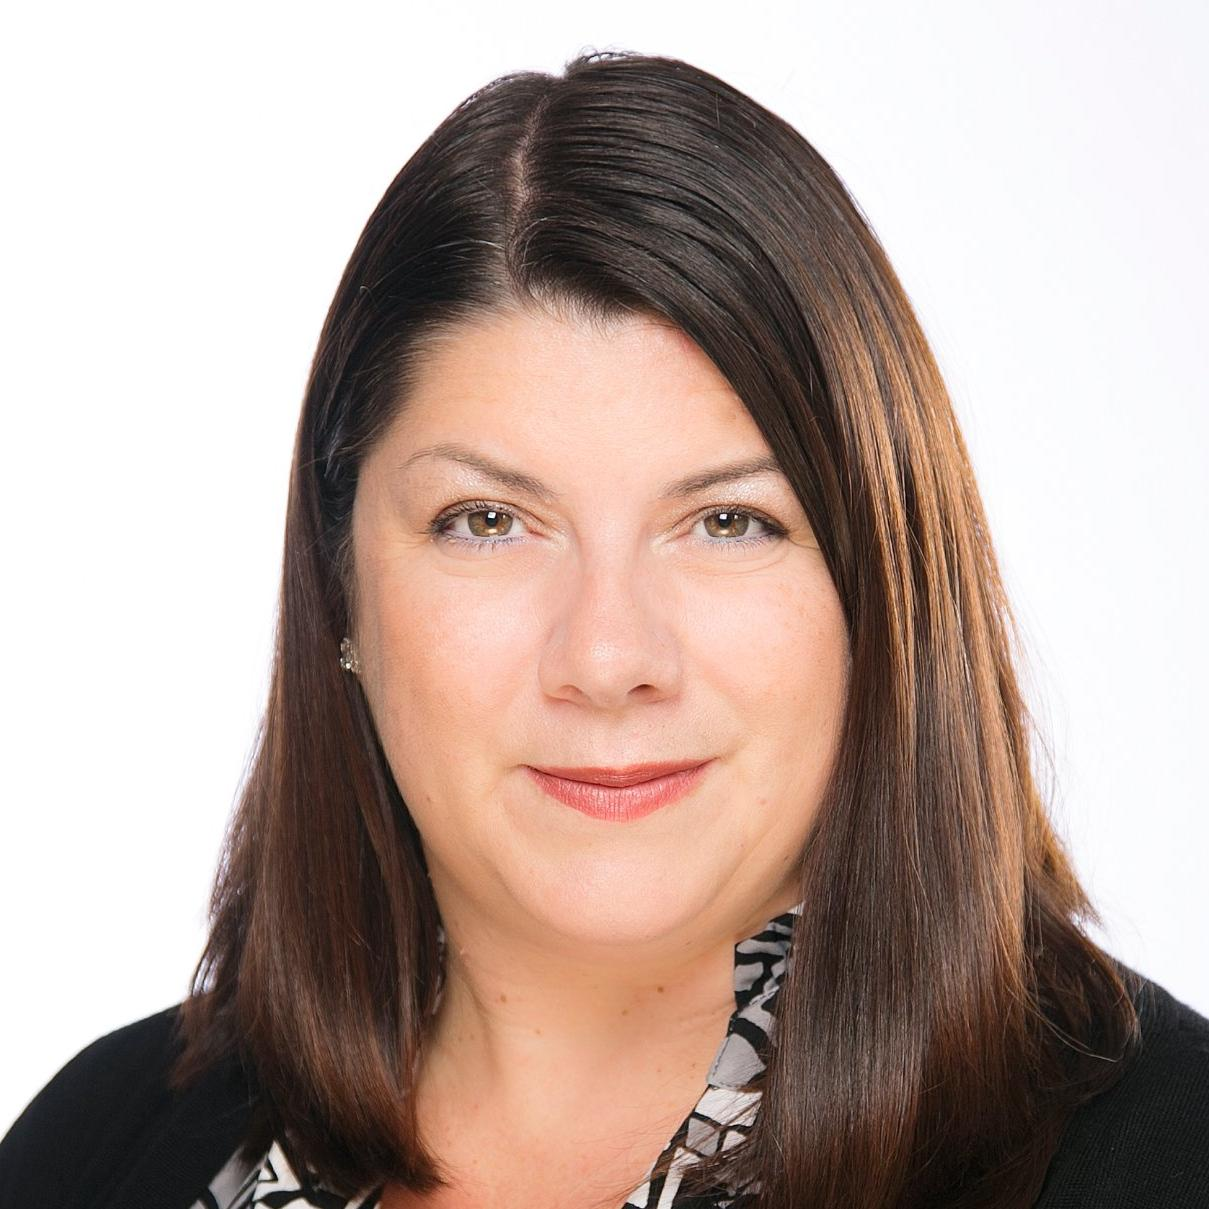 Headshot of Jackelyn Maiatico, FCT Business Development Manager, Commercial Solutions